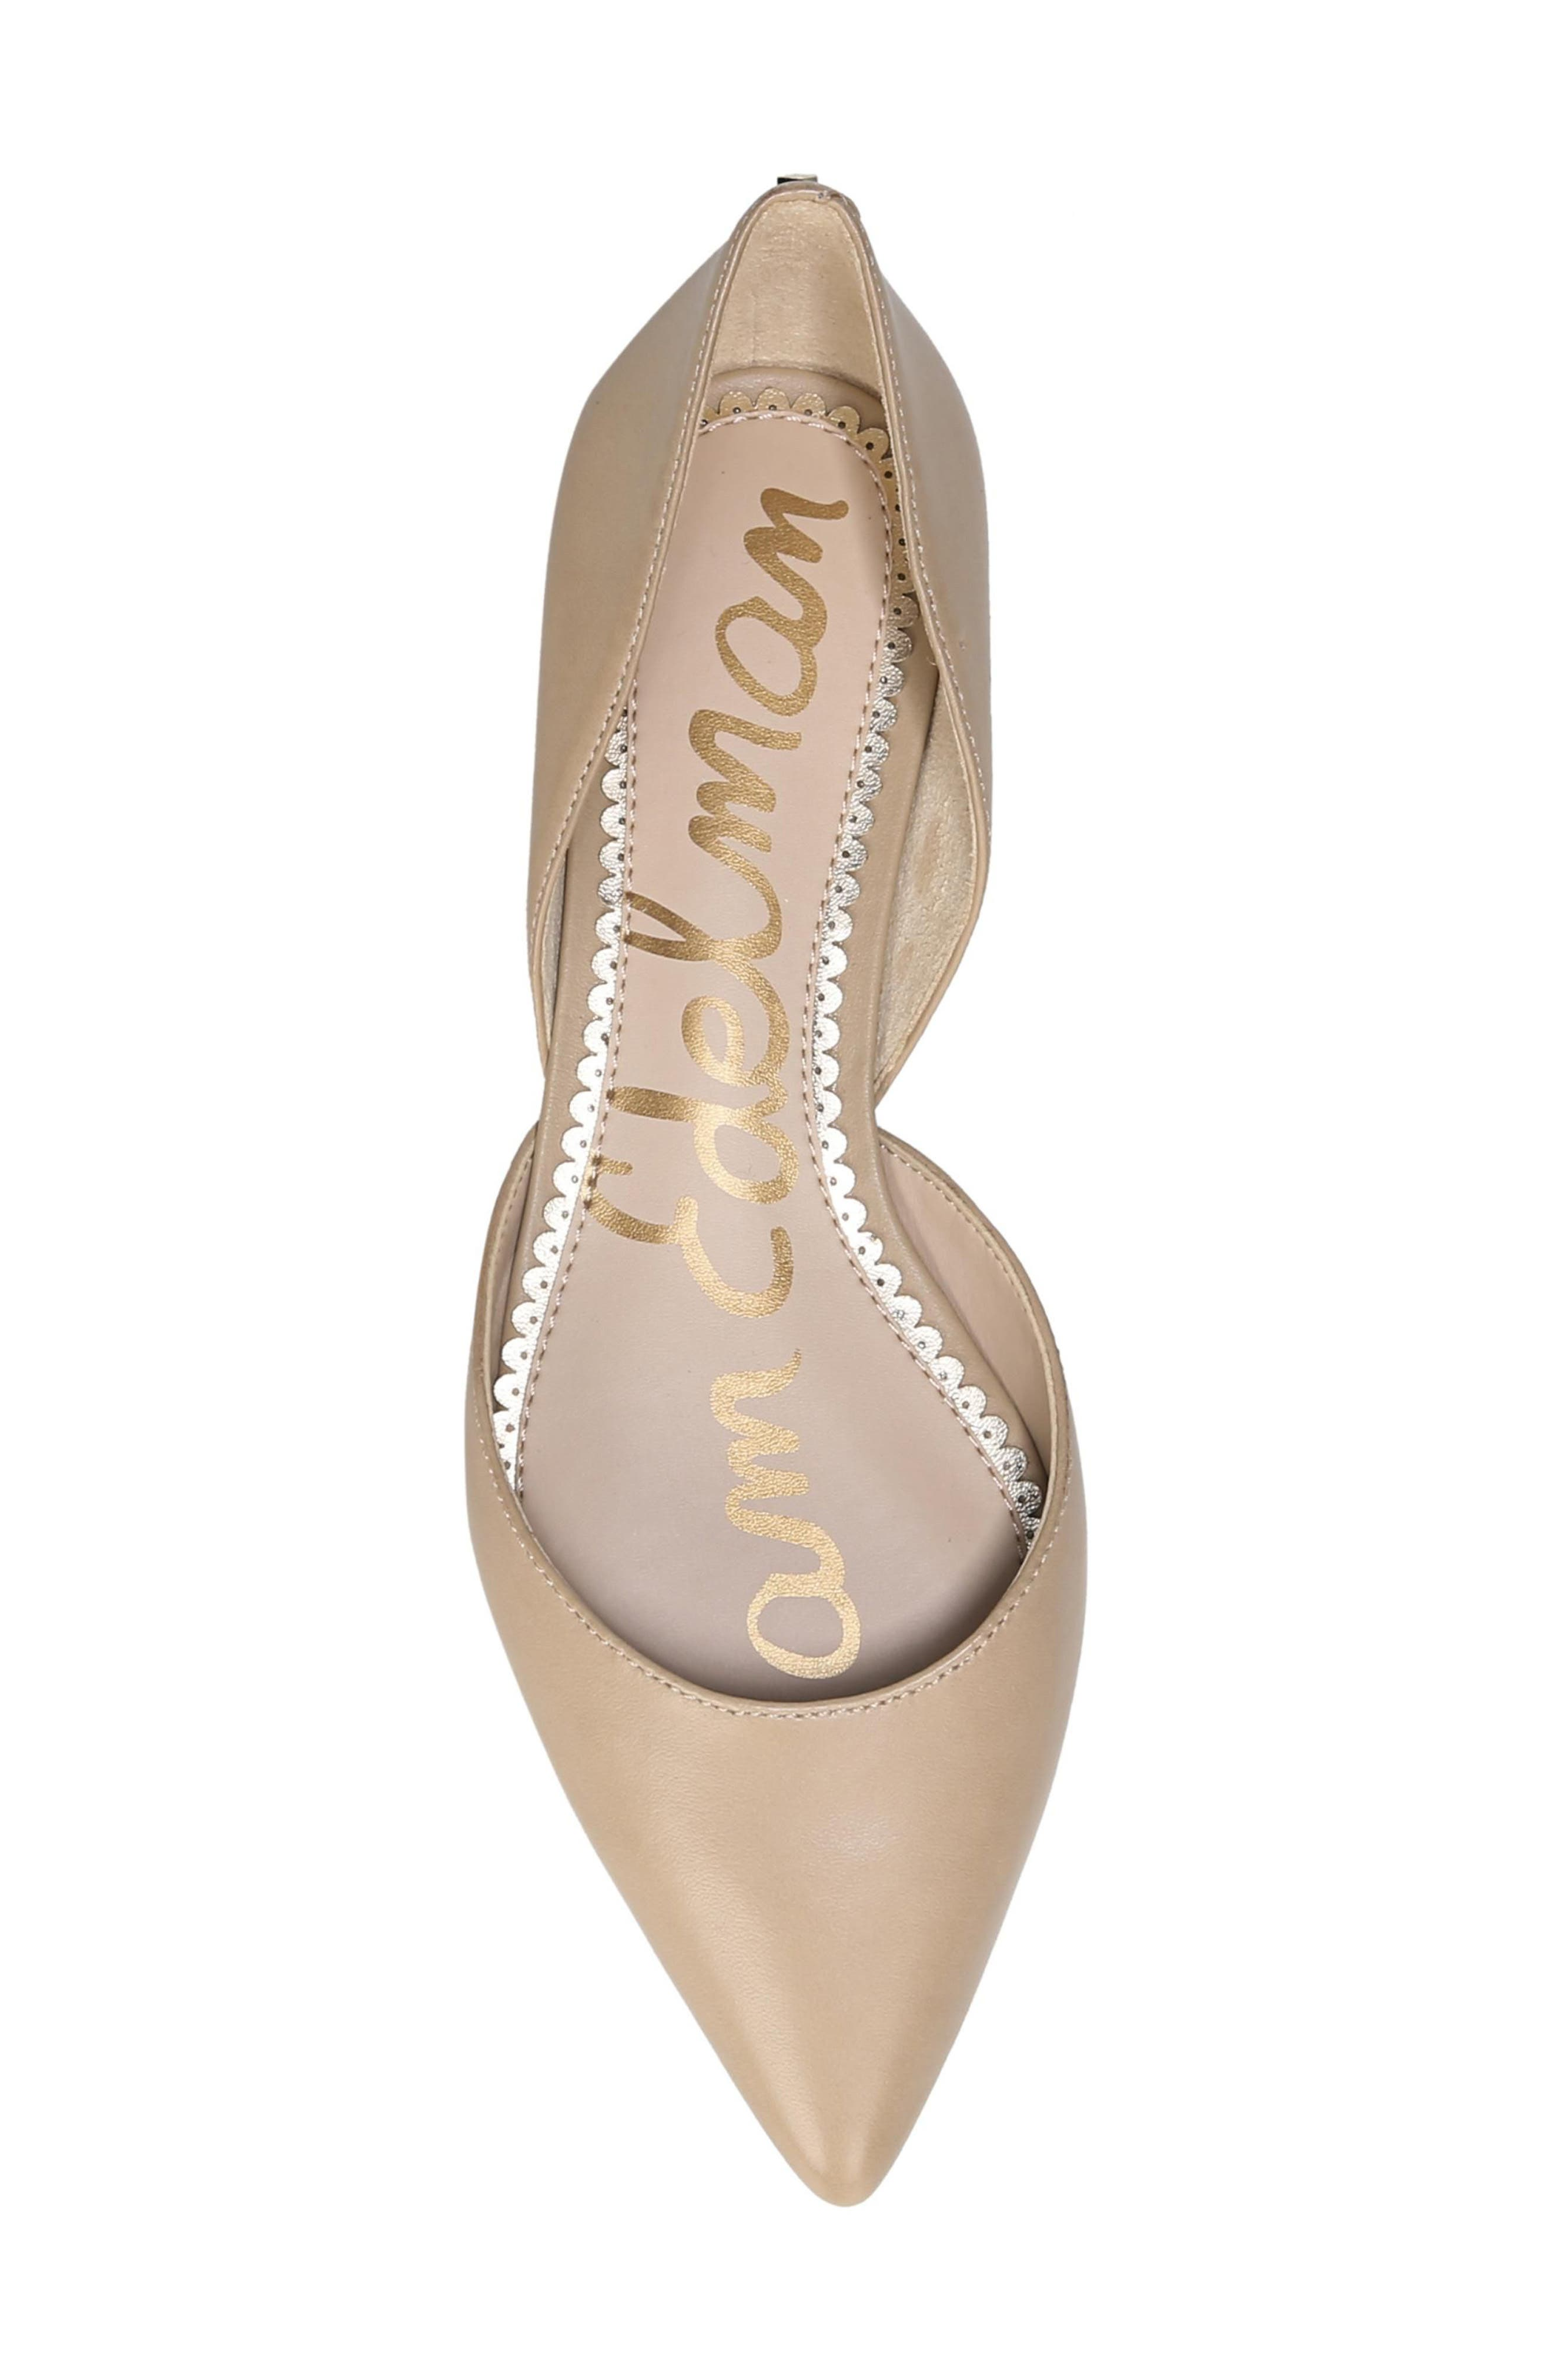 SAM EDELMAN, Rodney Pointy Toe d'Orsay Flat, Alternate thumbnail 5, color, CLASSIC NUDE LEATHER